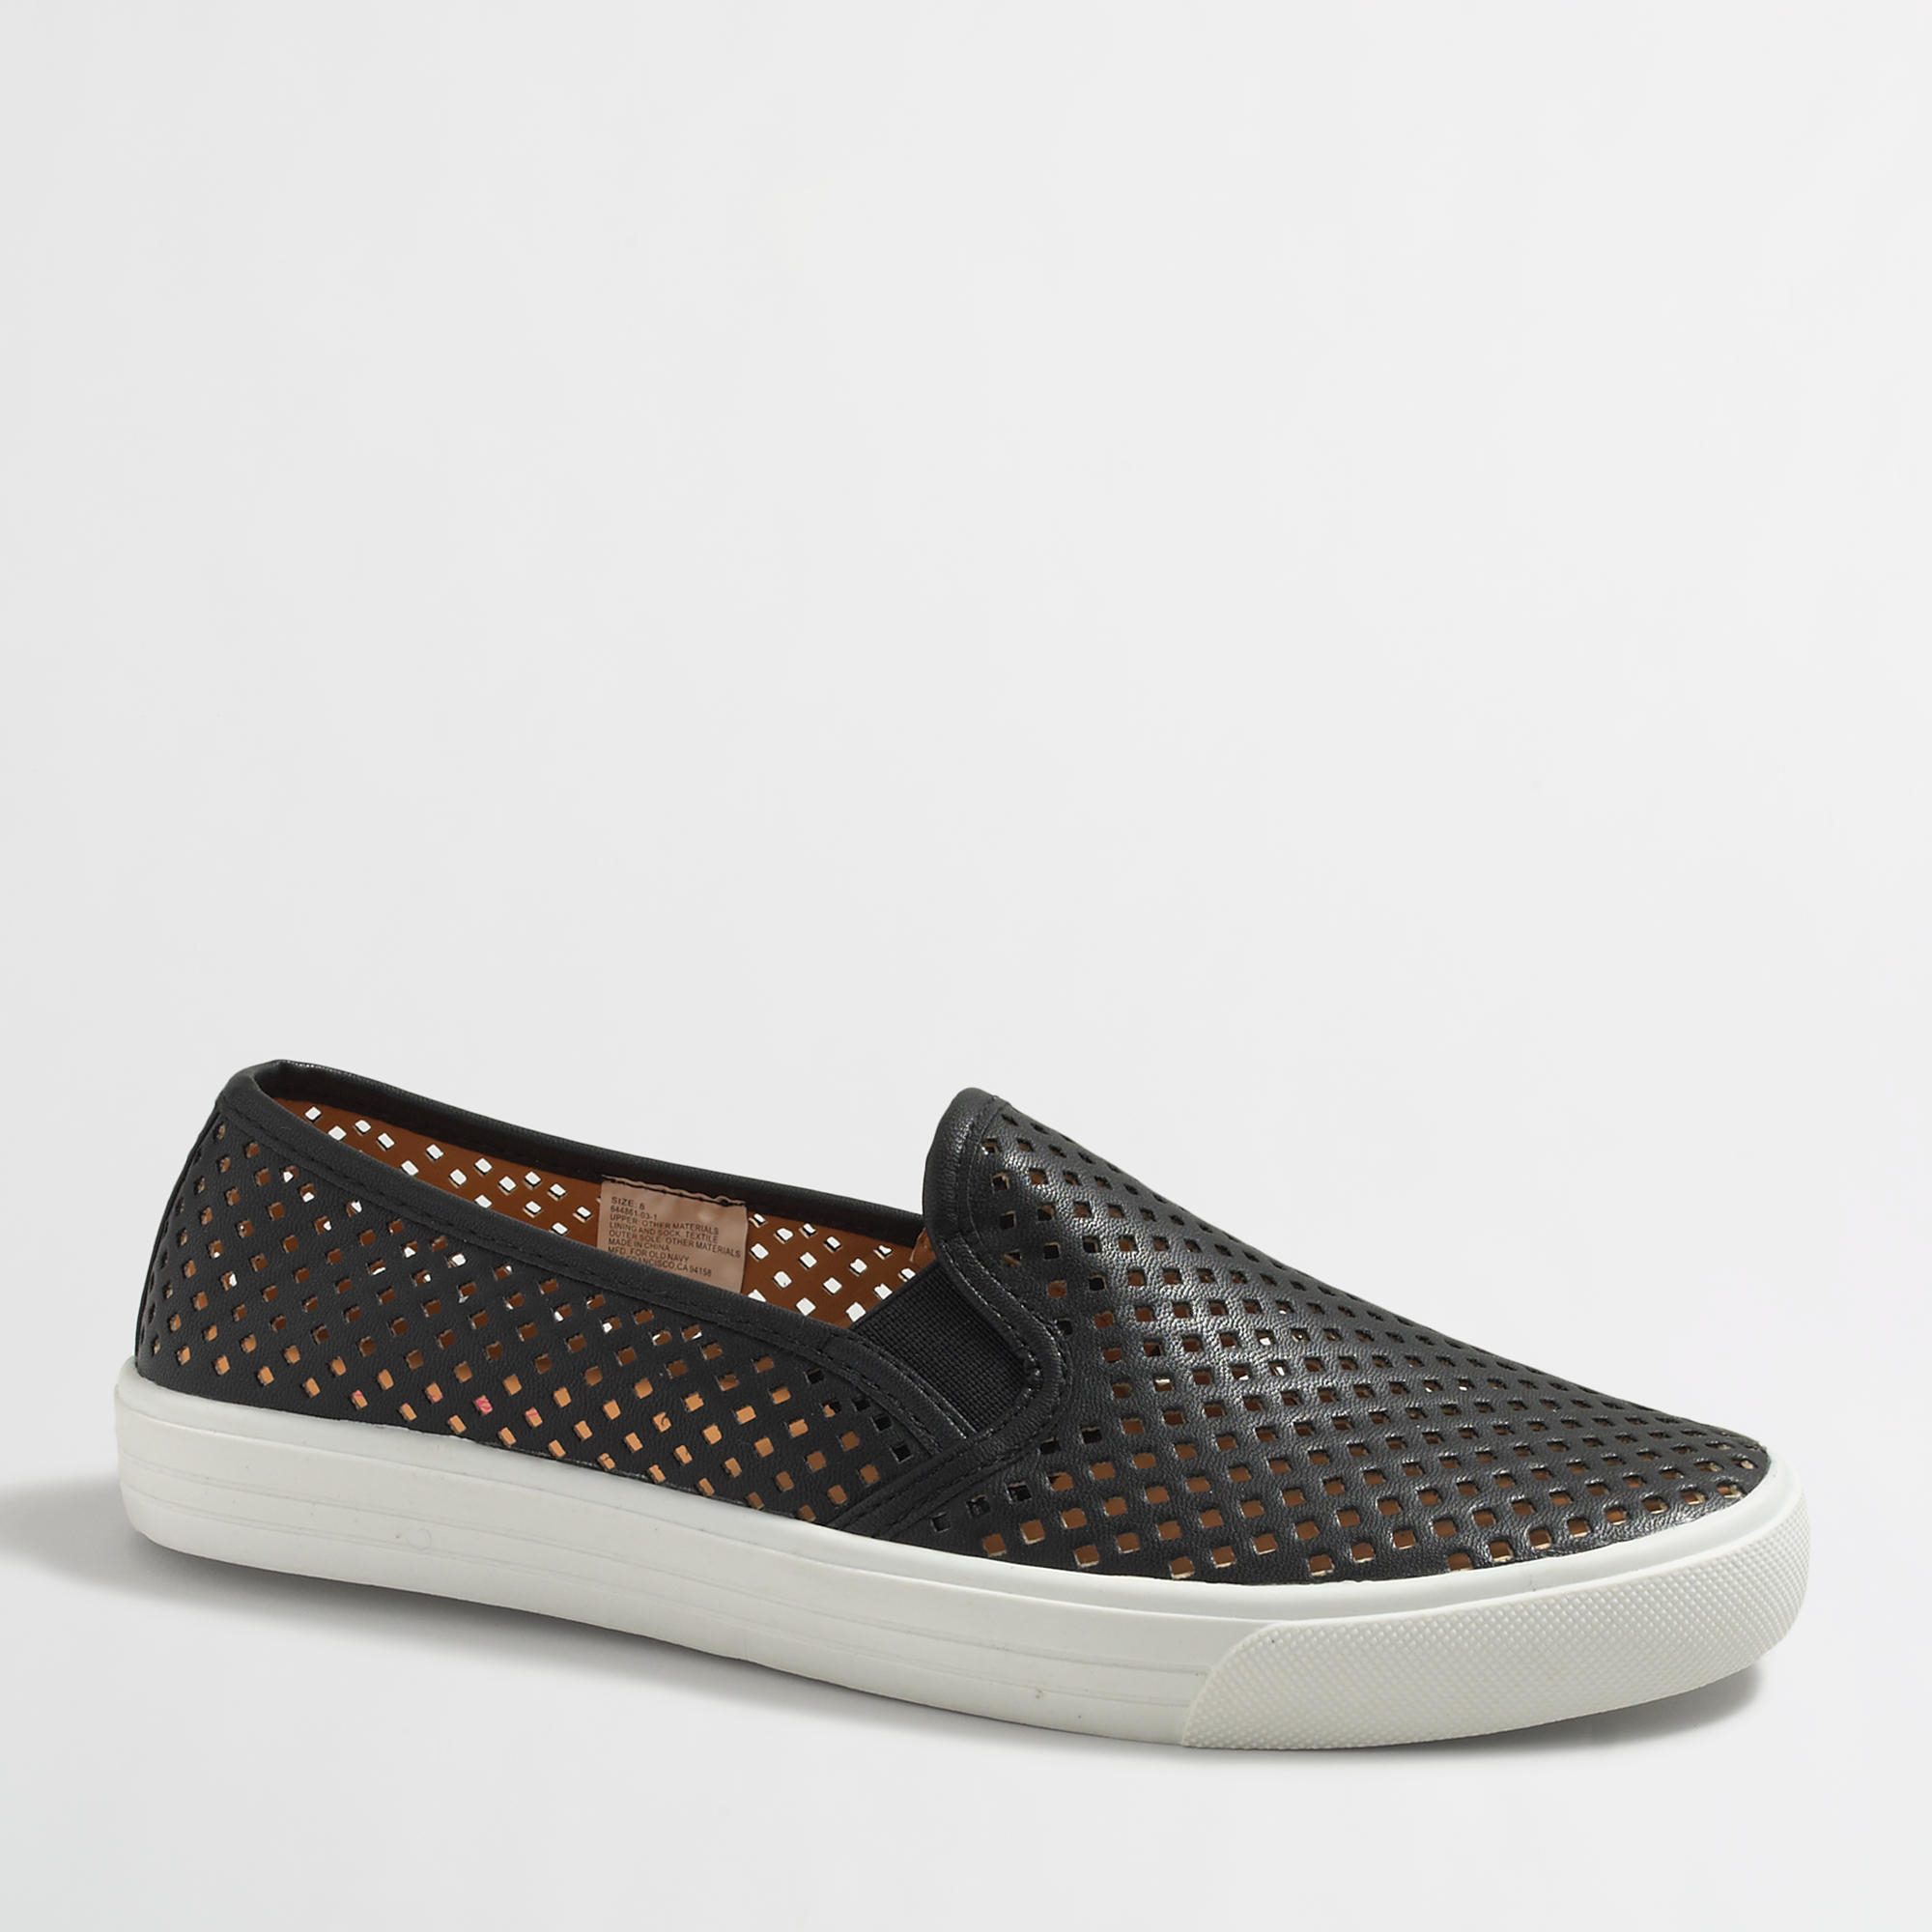 J.Crew Factory Perforated Slip-On